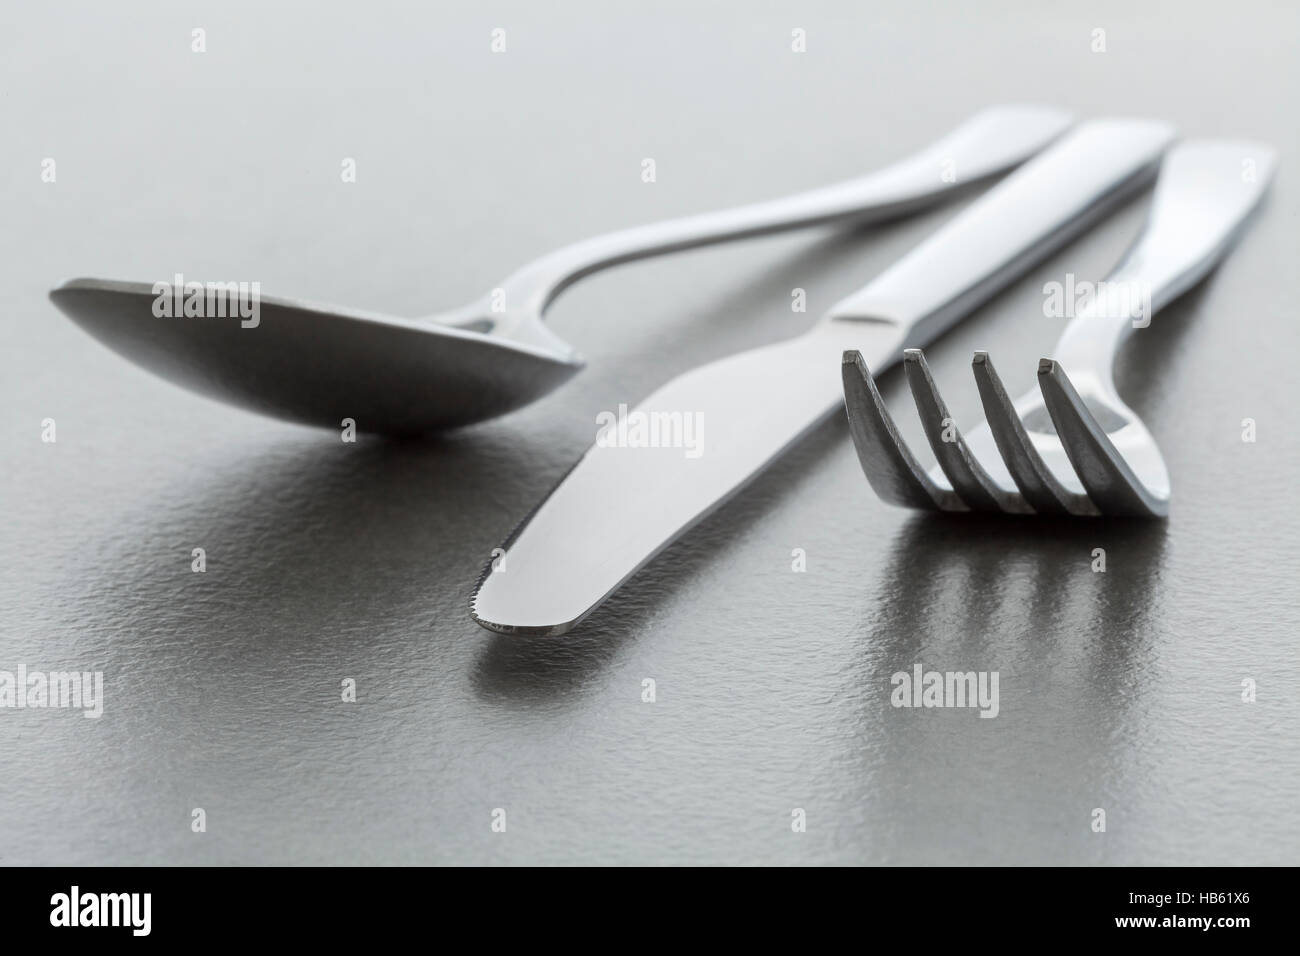 Shiny metal fork, knife and spoon - Stock Image